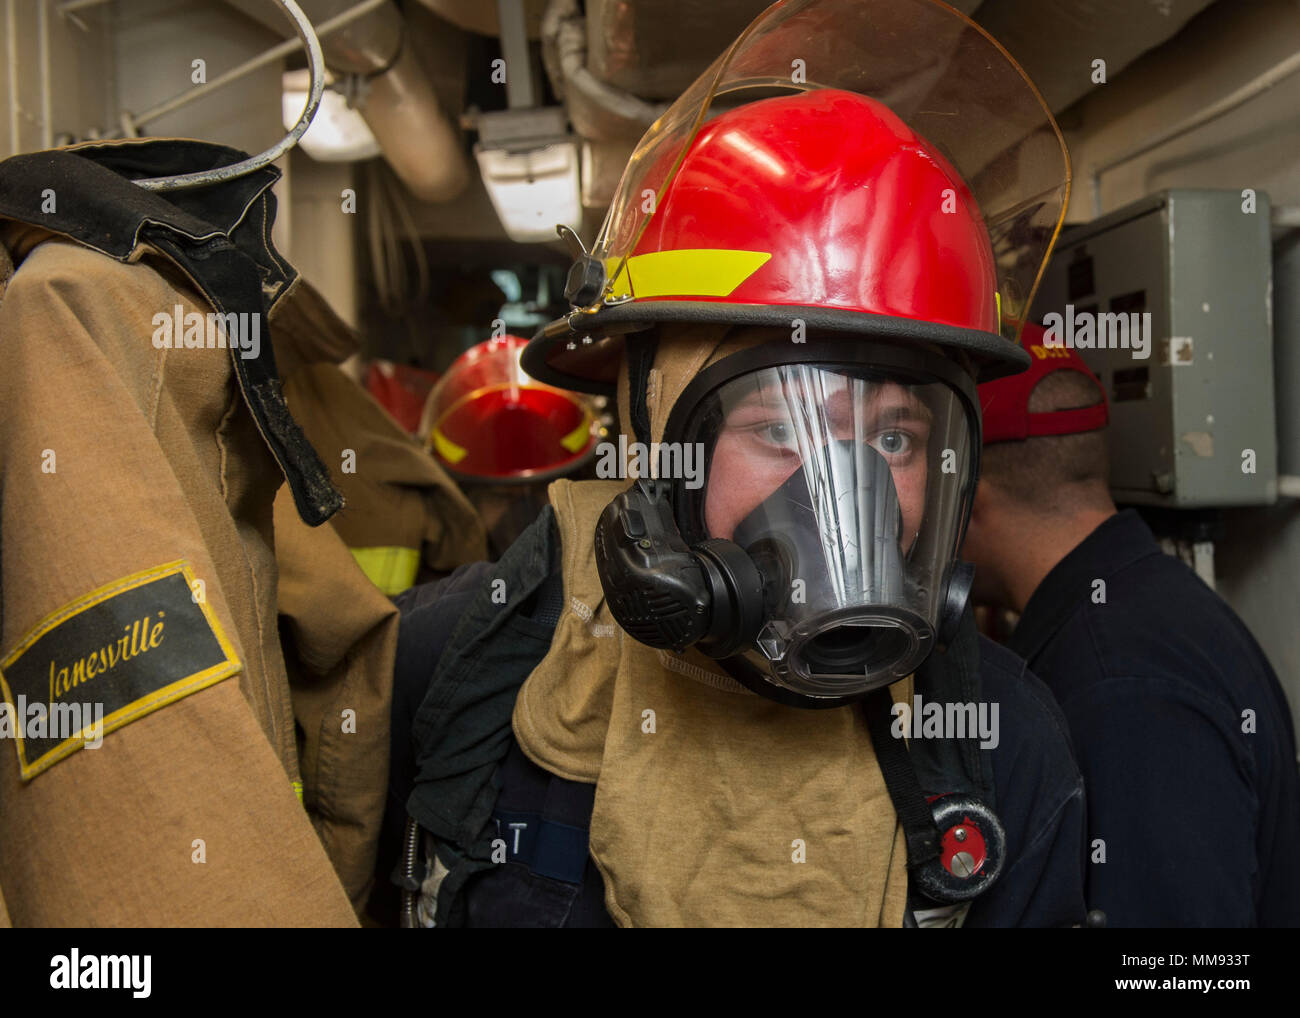 170913-N-UB406-013 ATLANTIC OCEAN (Sept. 13, 2017) Damage Controlman 3rd Class Mathew Pelt, assigned to the Arleigh Burke-class guided-missile destroyer USS Mitscher (DDG 57), prepares to investigate a toxic gas leak during a damage control training drill Sept. 13, 2017. Mitscher, homeported in Norfolk, is conducting naval operations in the U.S. 6th Fleet area of operations in support of U.S. national security interests in Europe. (U.S. Navy photo by Mass Communication Specialist Seaman Cameron M. Stoner/Released) - Stock Image